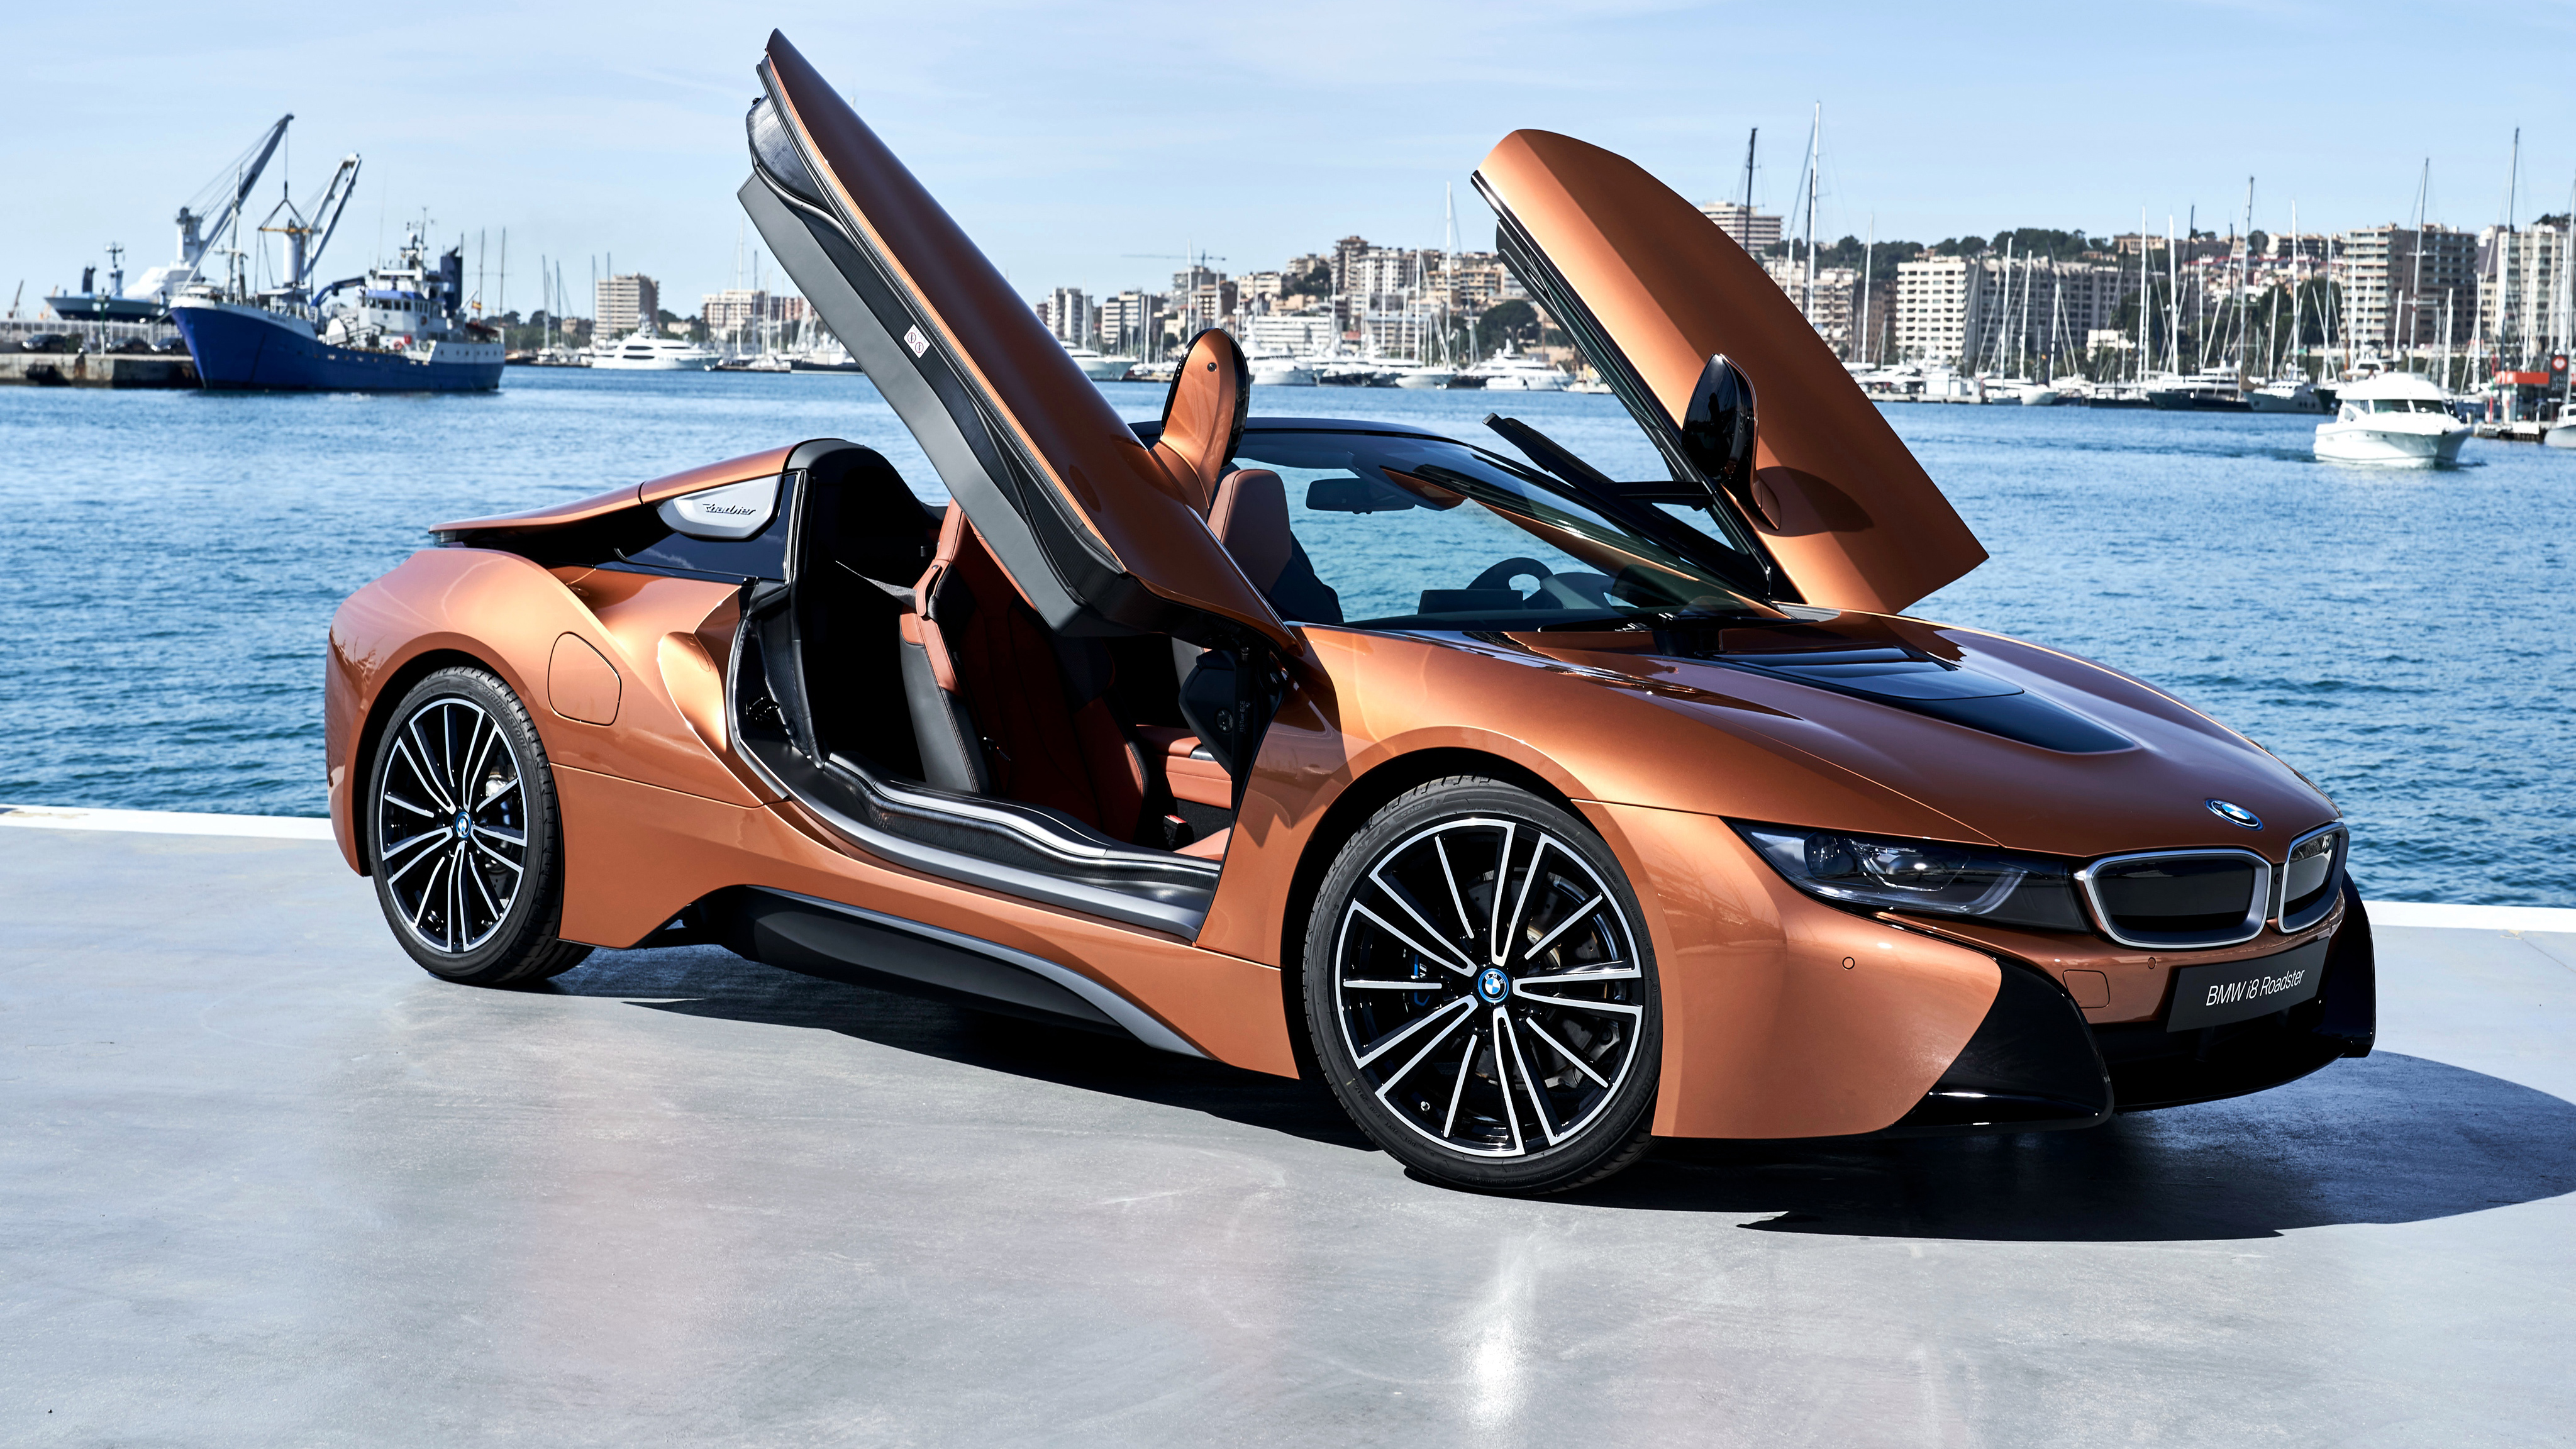 2018 bmw i8 roadster 4k wallpaper hd car wallpapers id 10254. Black Bedroom Furniture Sets. Home Design Ideas